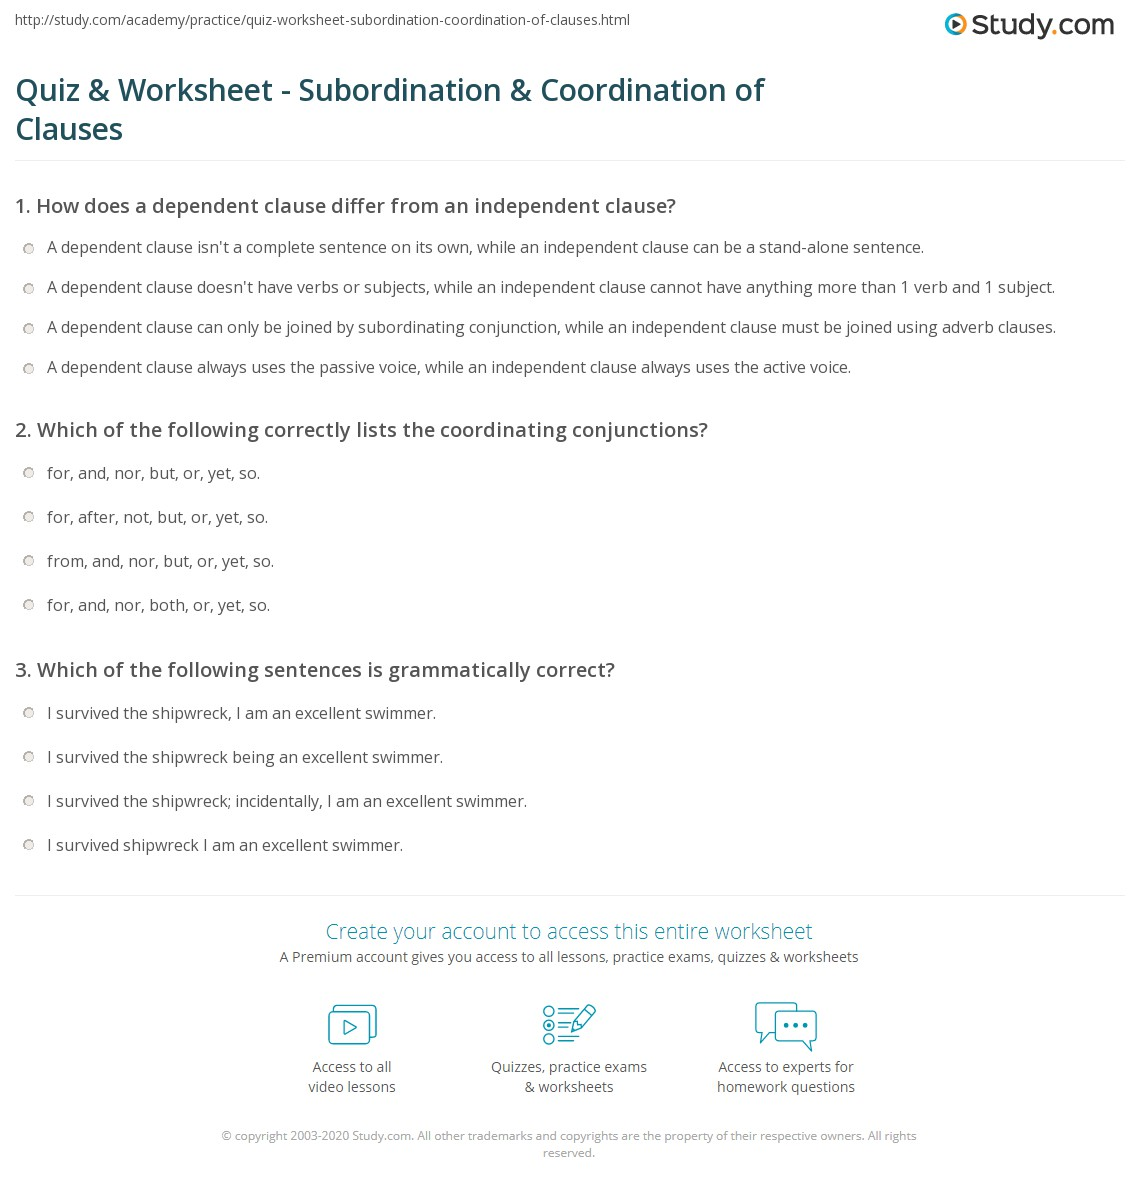 Quiz Worksheet Subordination Coordination of Clauses – Subordinate Clauses Worksheet